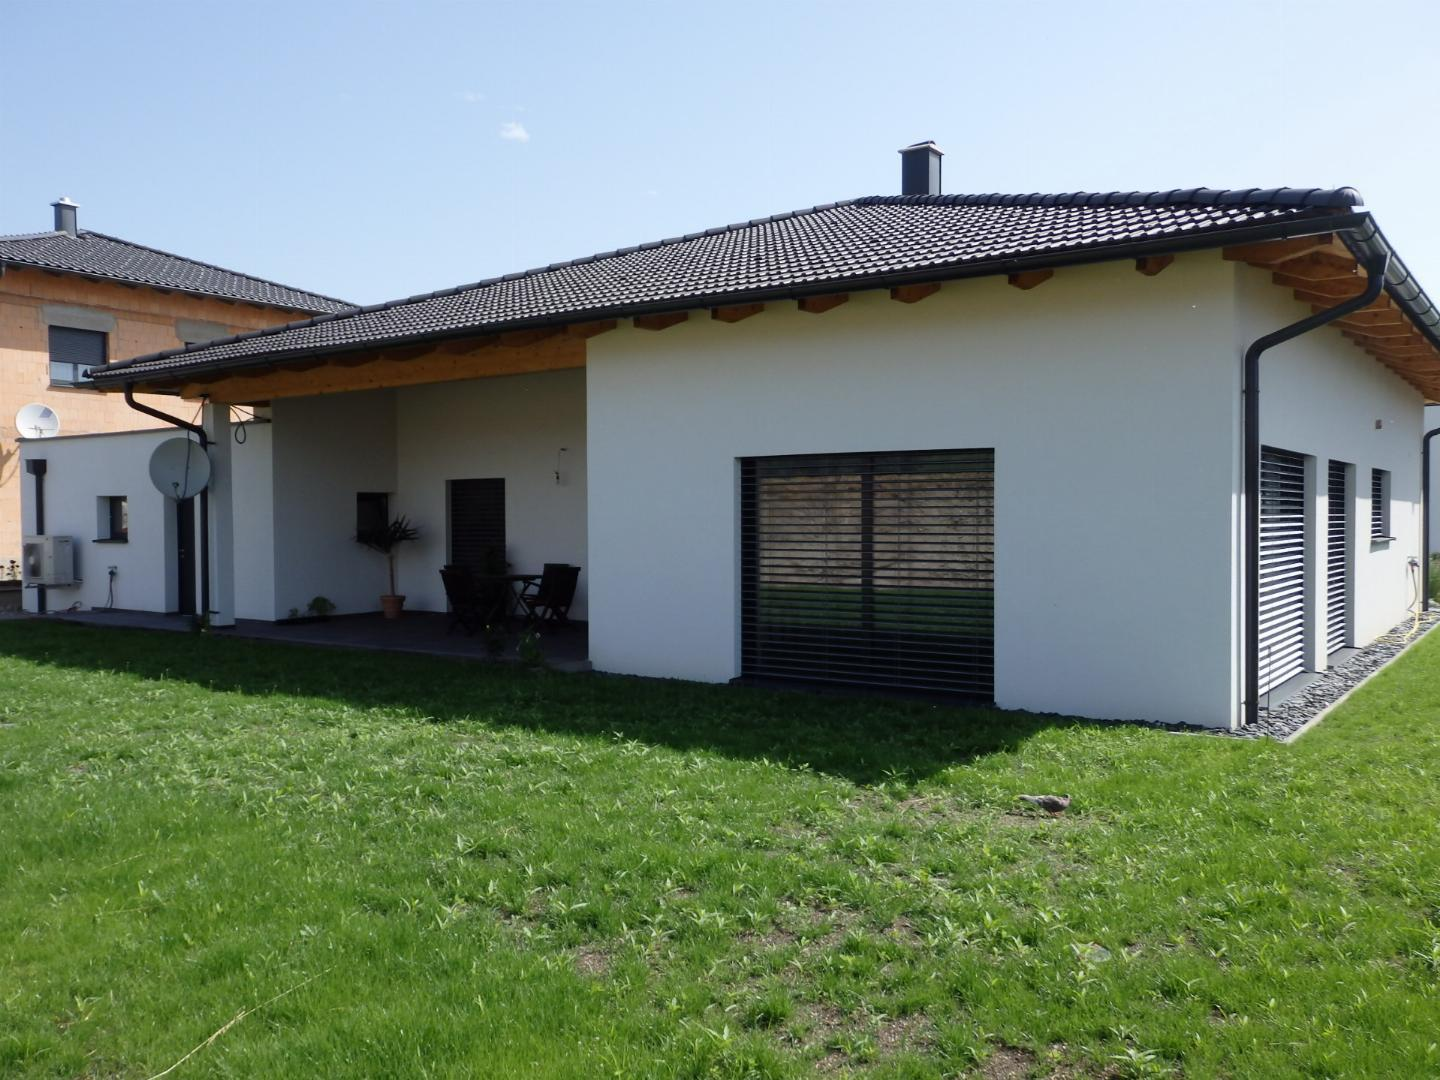 Traumhafter Bungalow mit Doppelgarage!